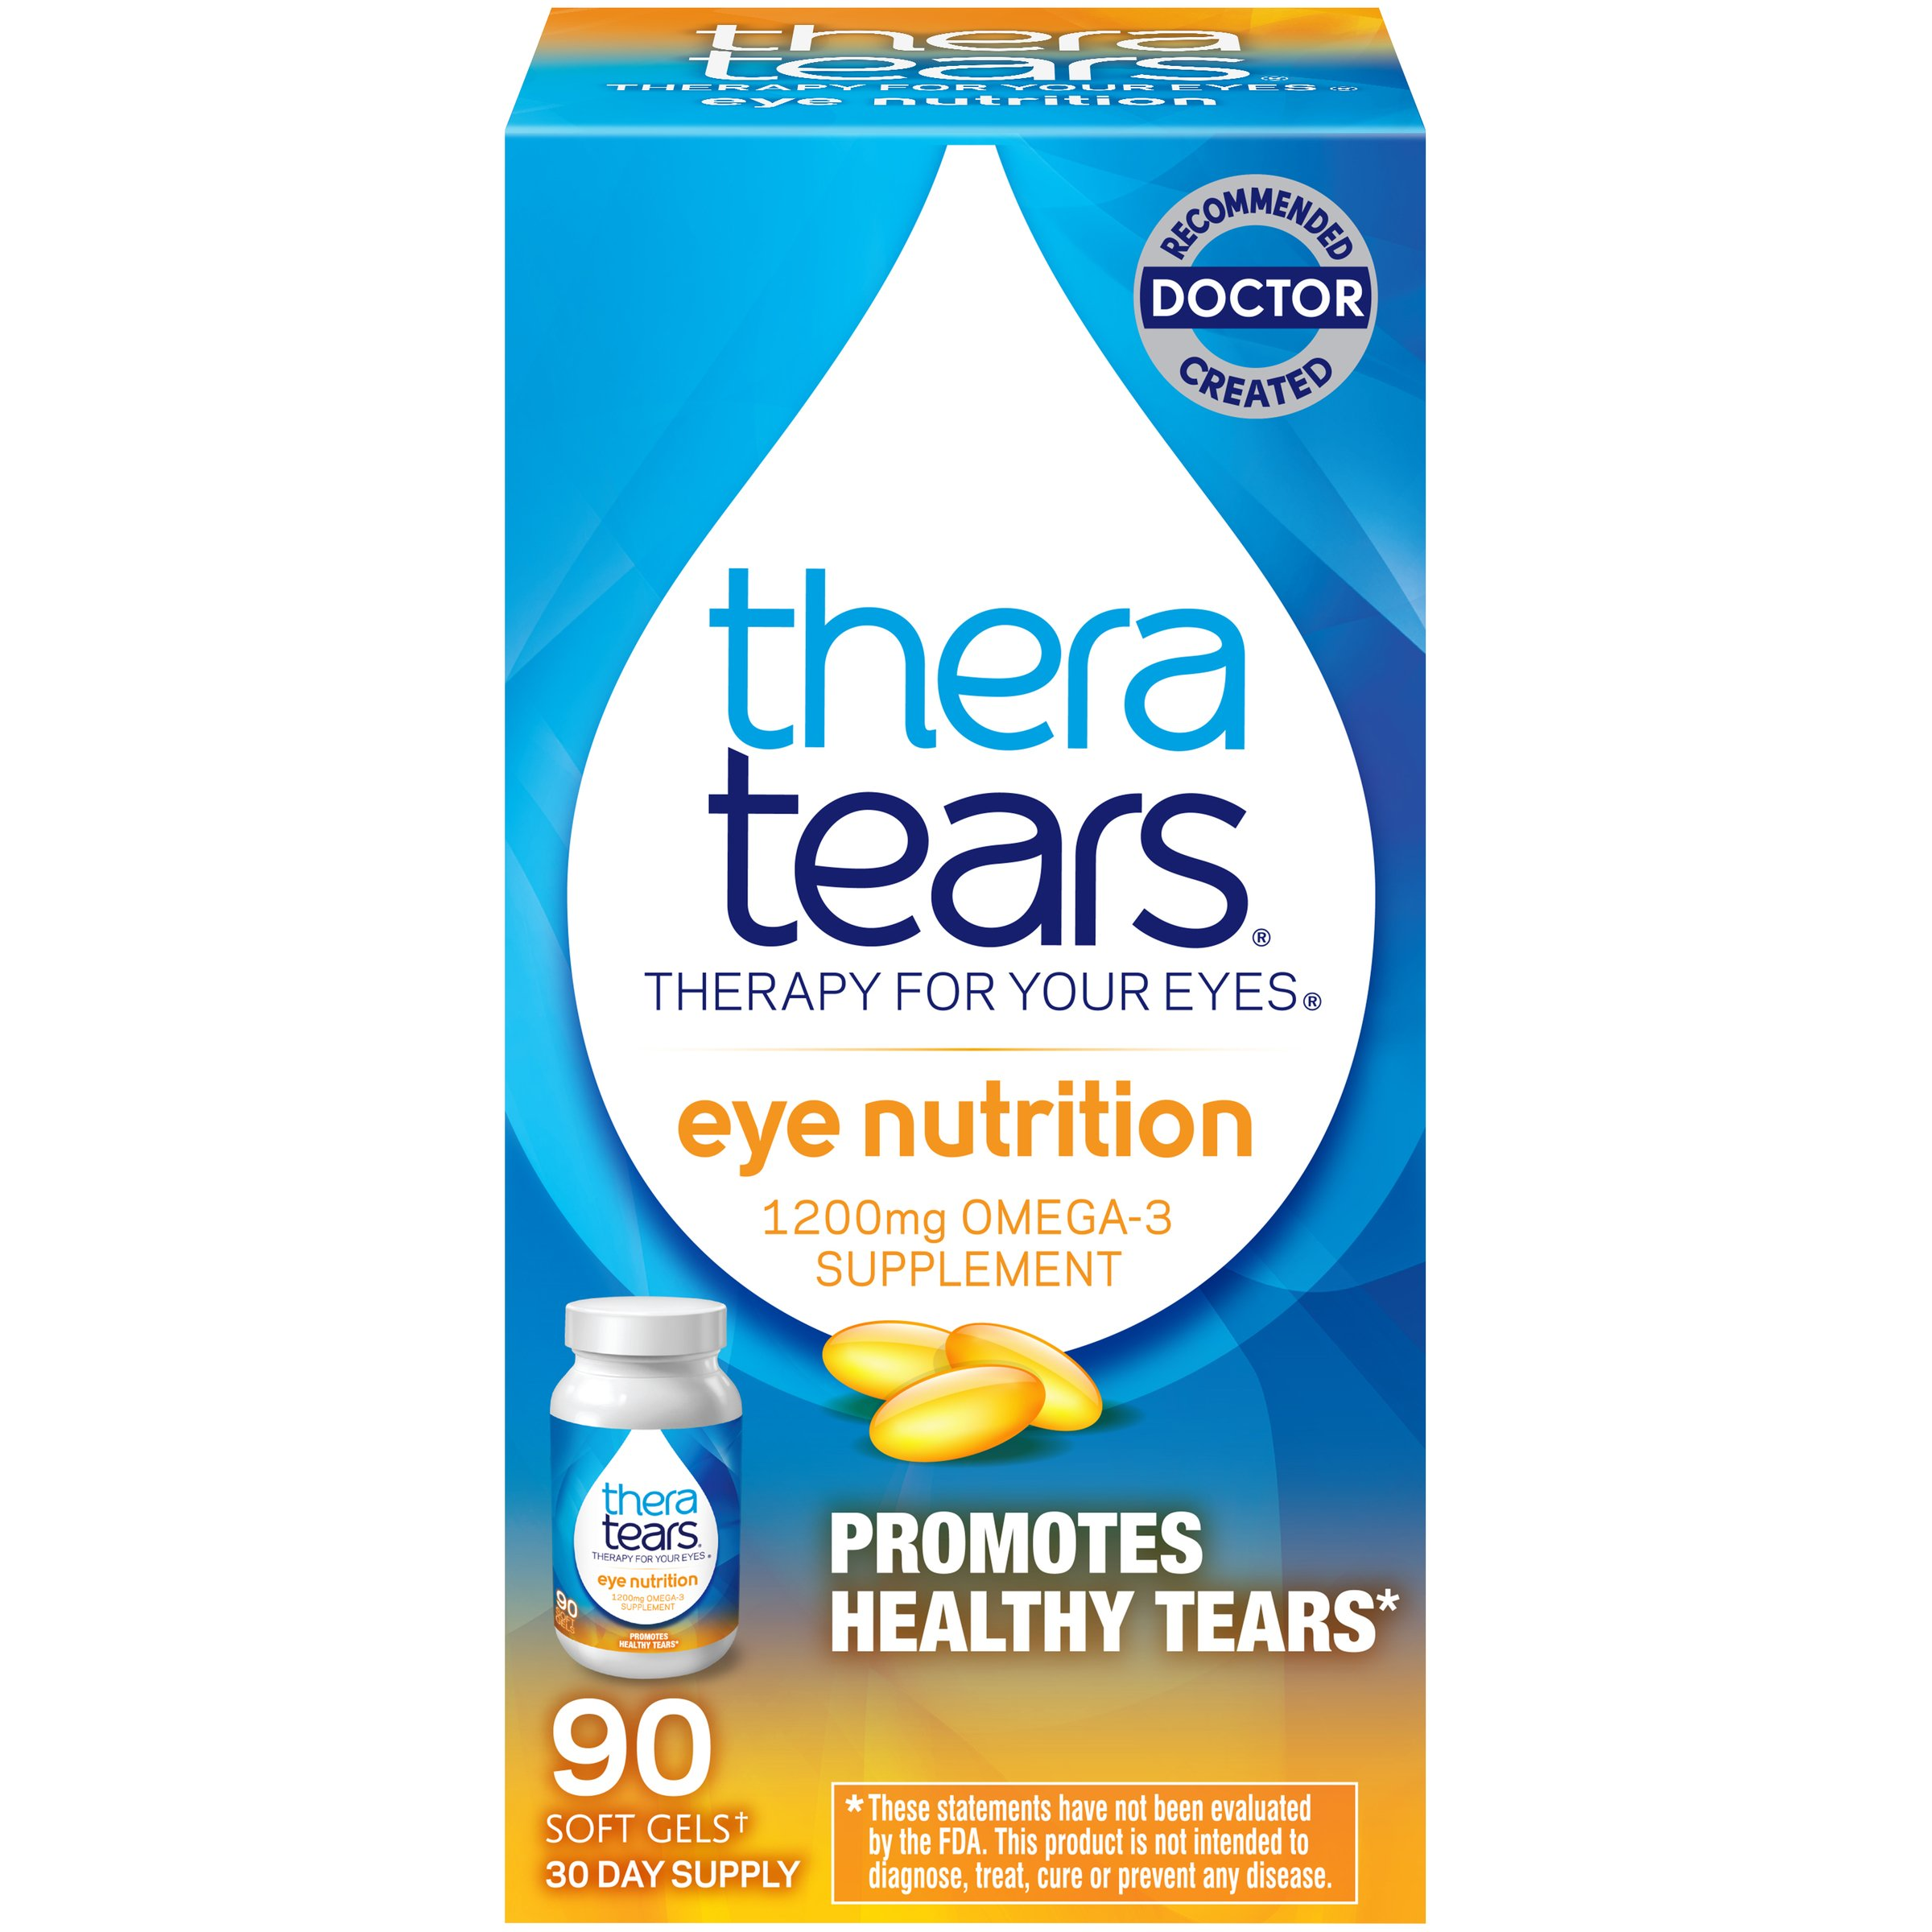 TheraTears 1200mg Omega 3 Supplement for Eye Nutrition, Organic Flaxseed Triglyceride Fish Oil and Vitamin E, 90 Count by Thera Tears